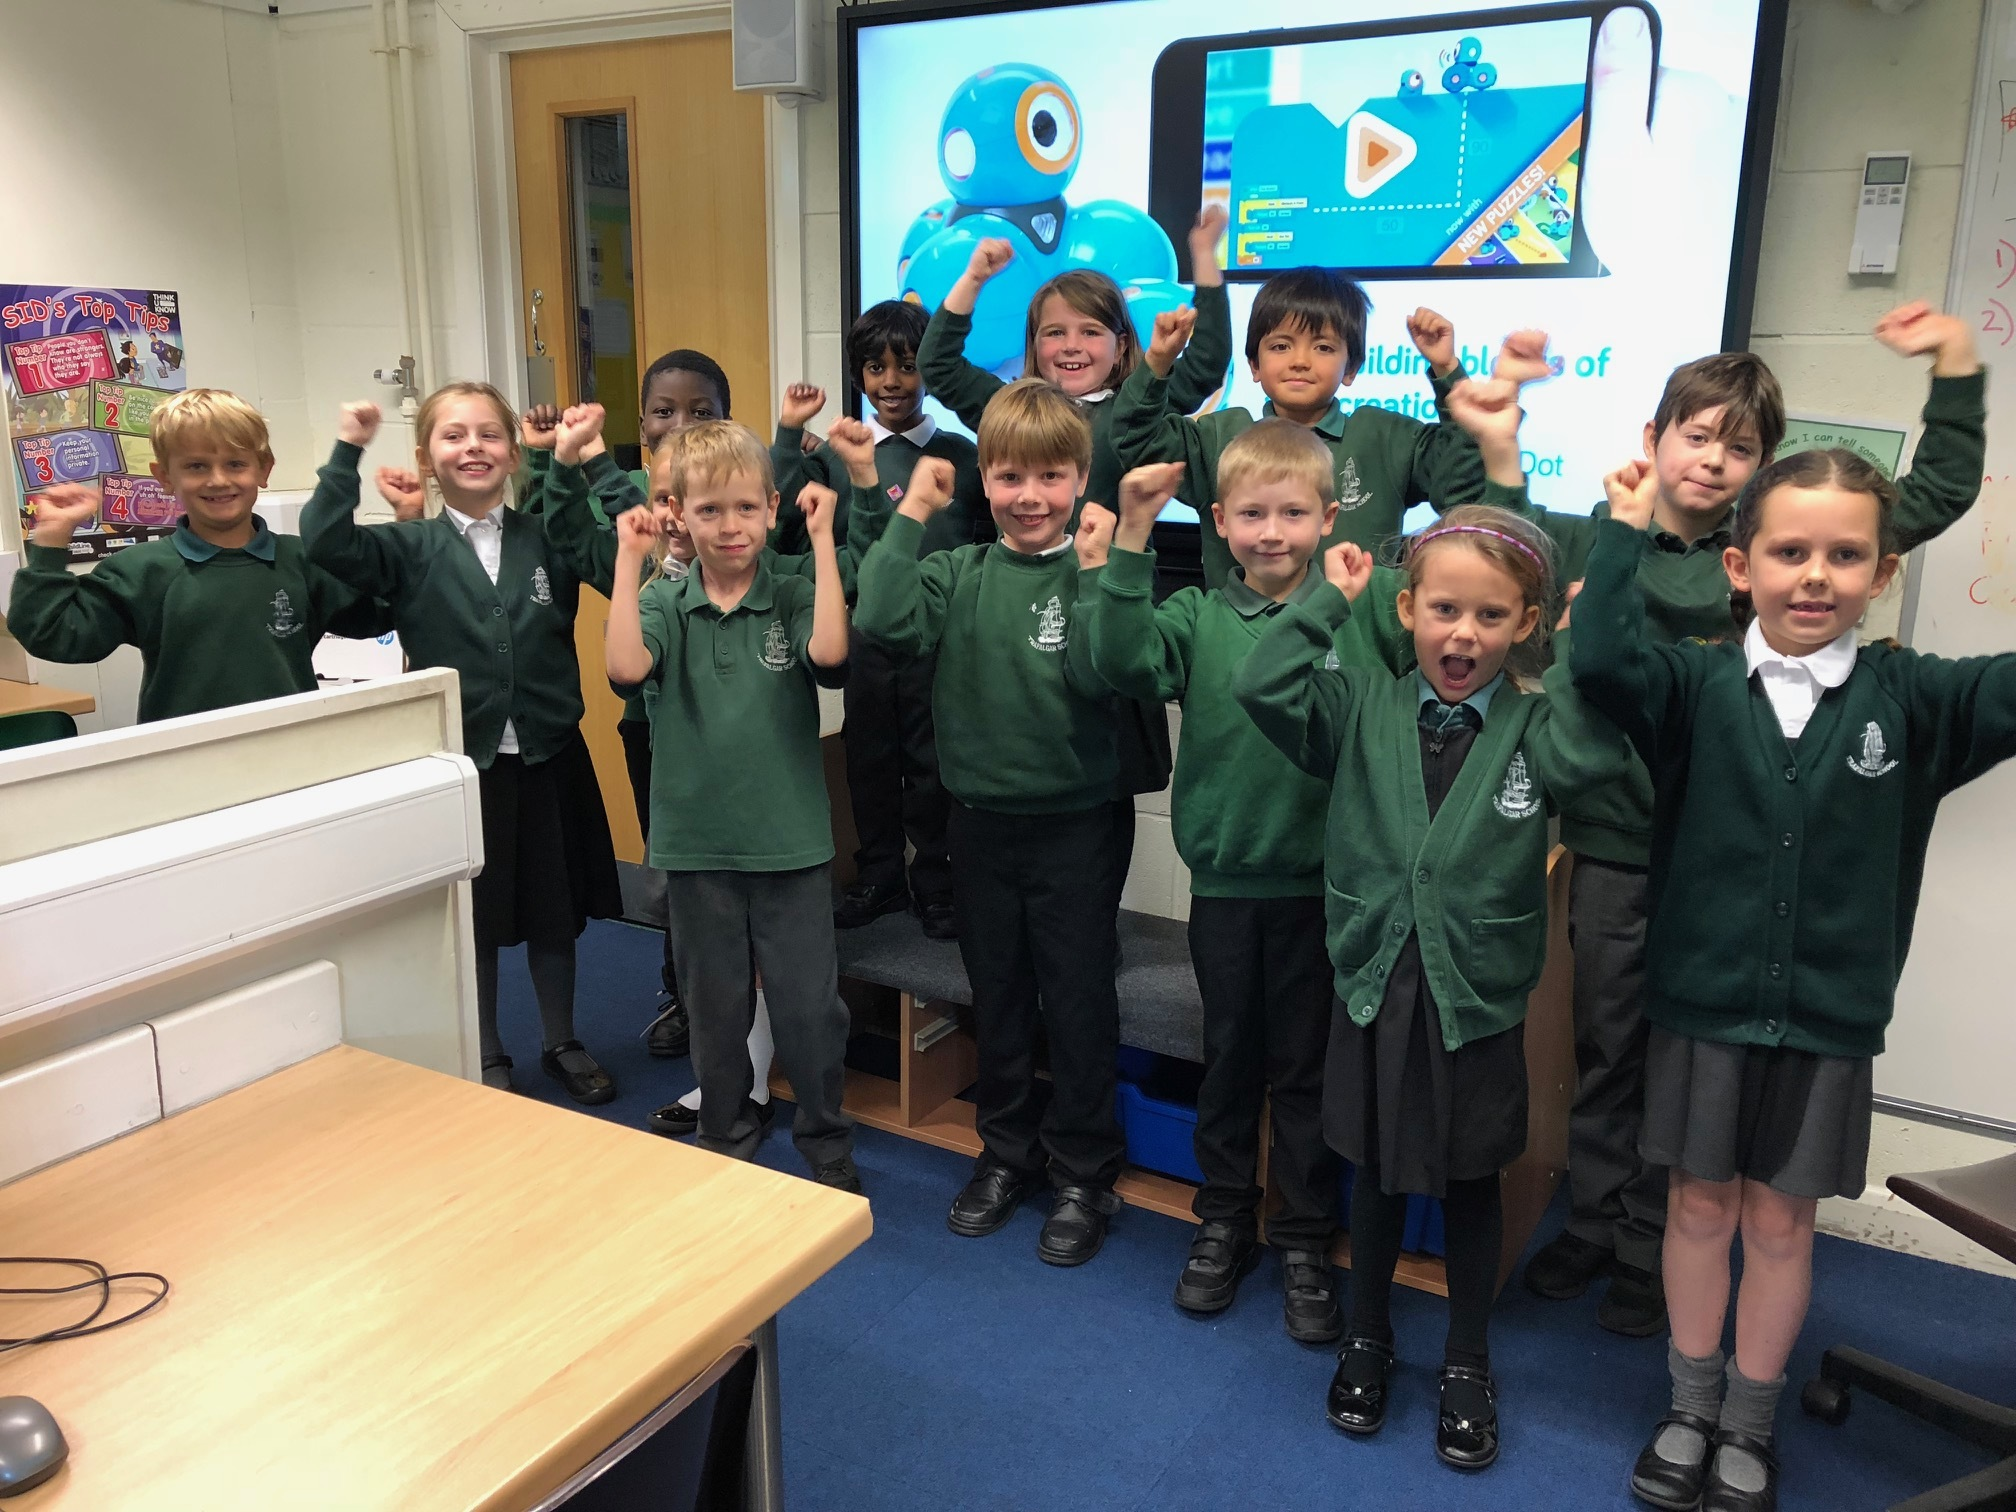 Trafalgar Infant School Pupils with their ActivPanel